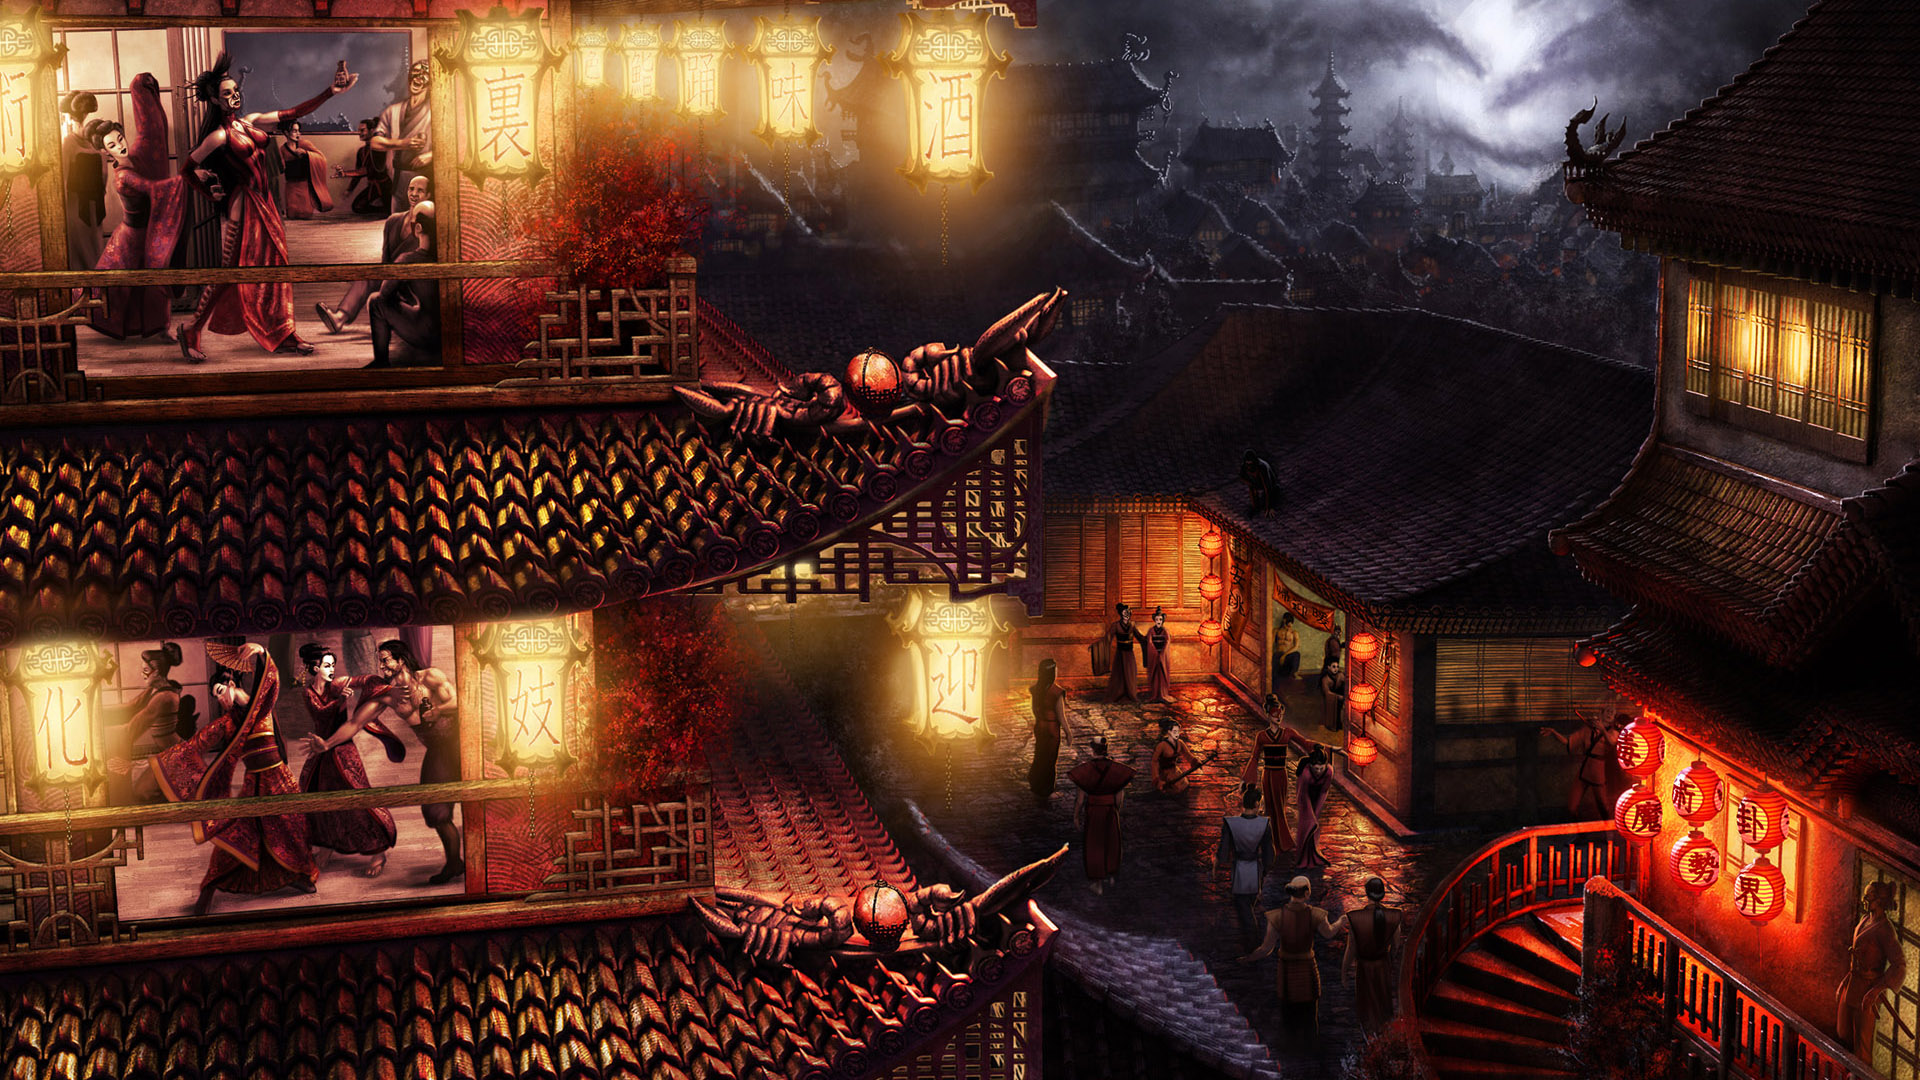 HD Wallpapers Cool Game Scenes